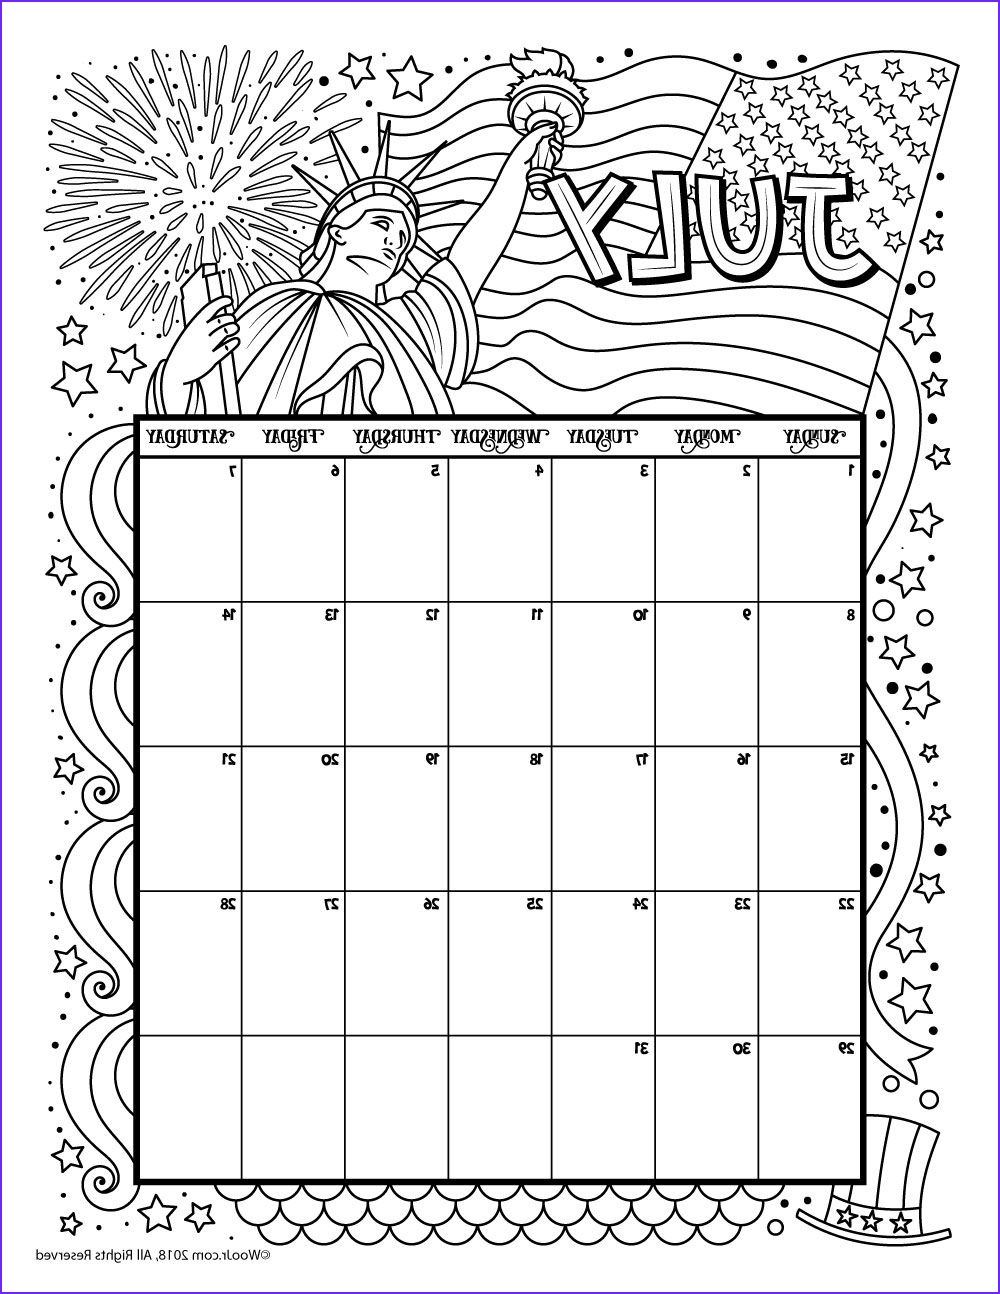 Coloring Calendar 2018 Beautiful Photography July 2018 Coloring Calendar Page